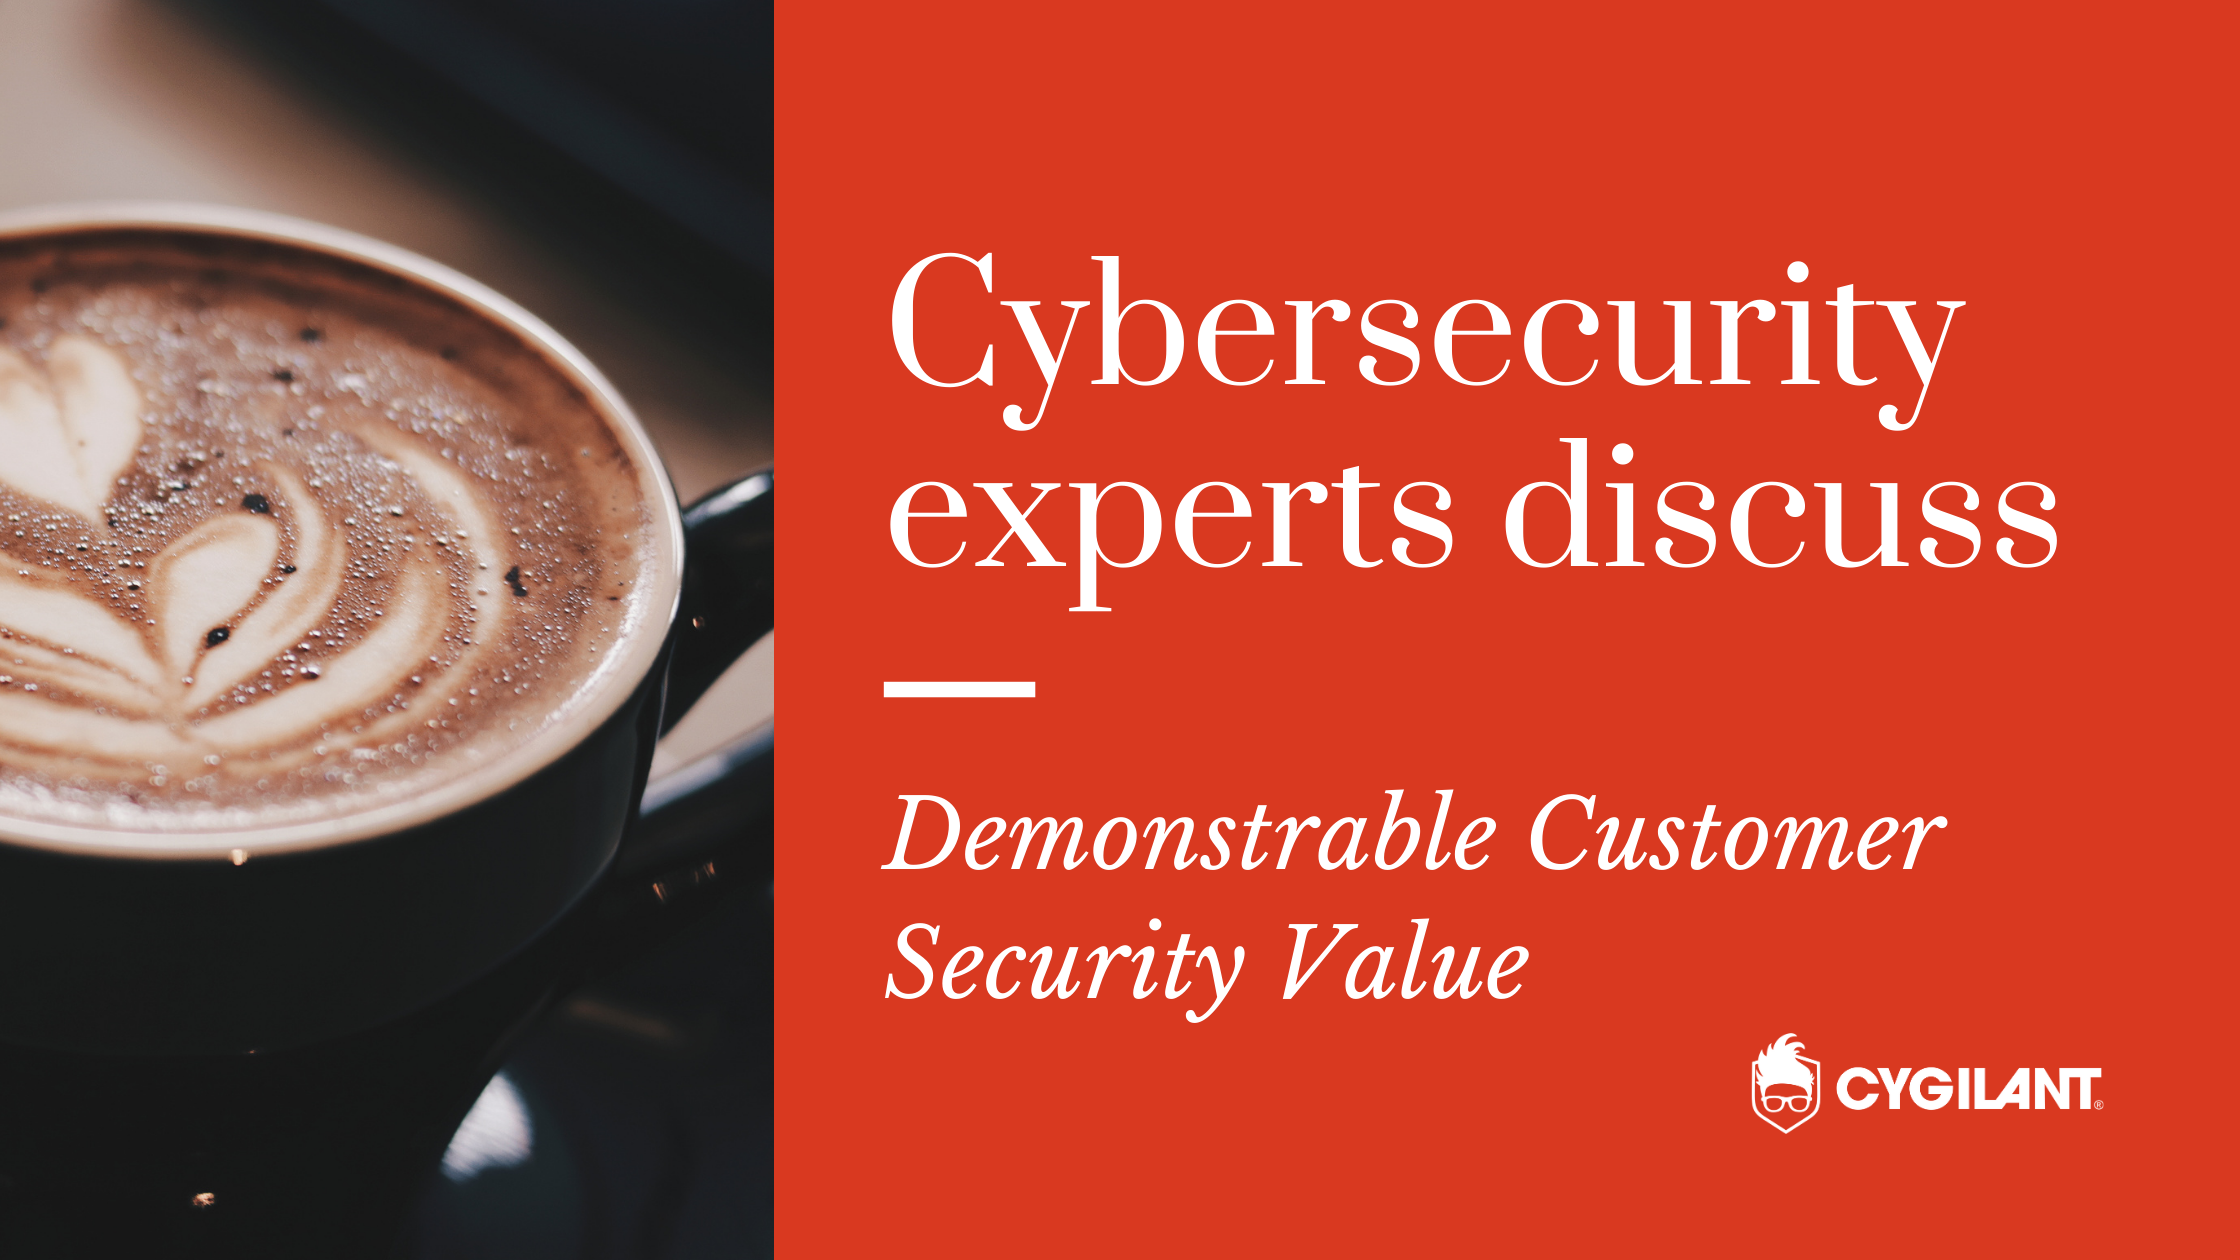 Cybersecurity Experts Discuss: Demonstrable Customer Security Value